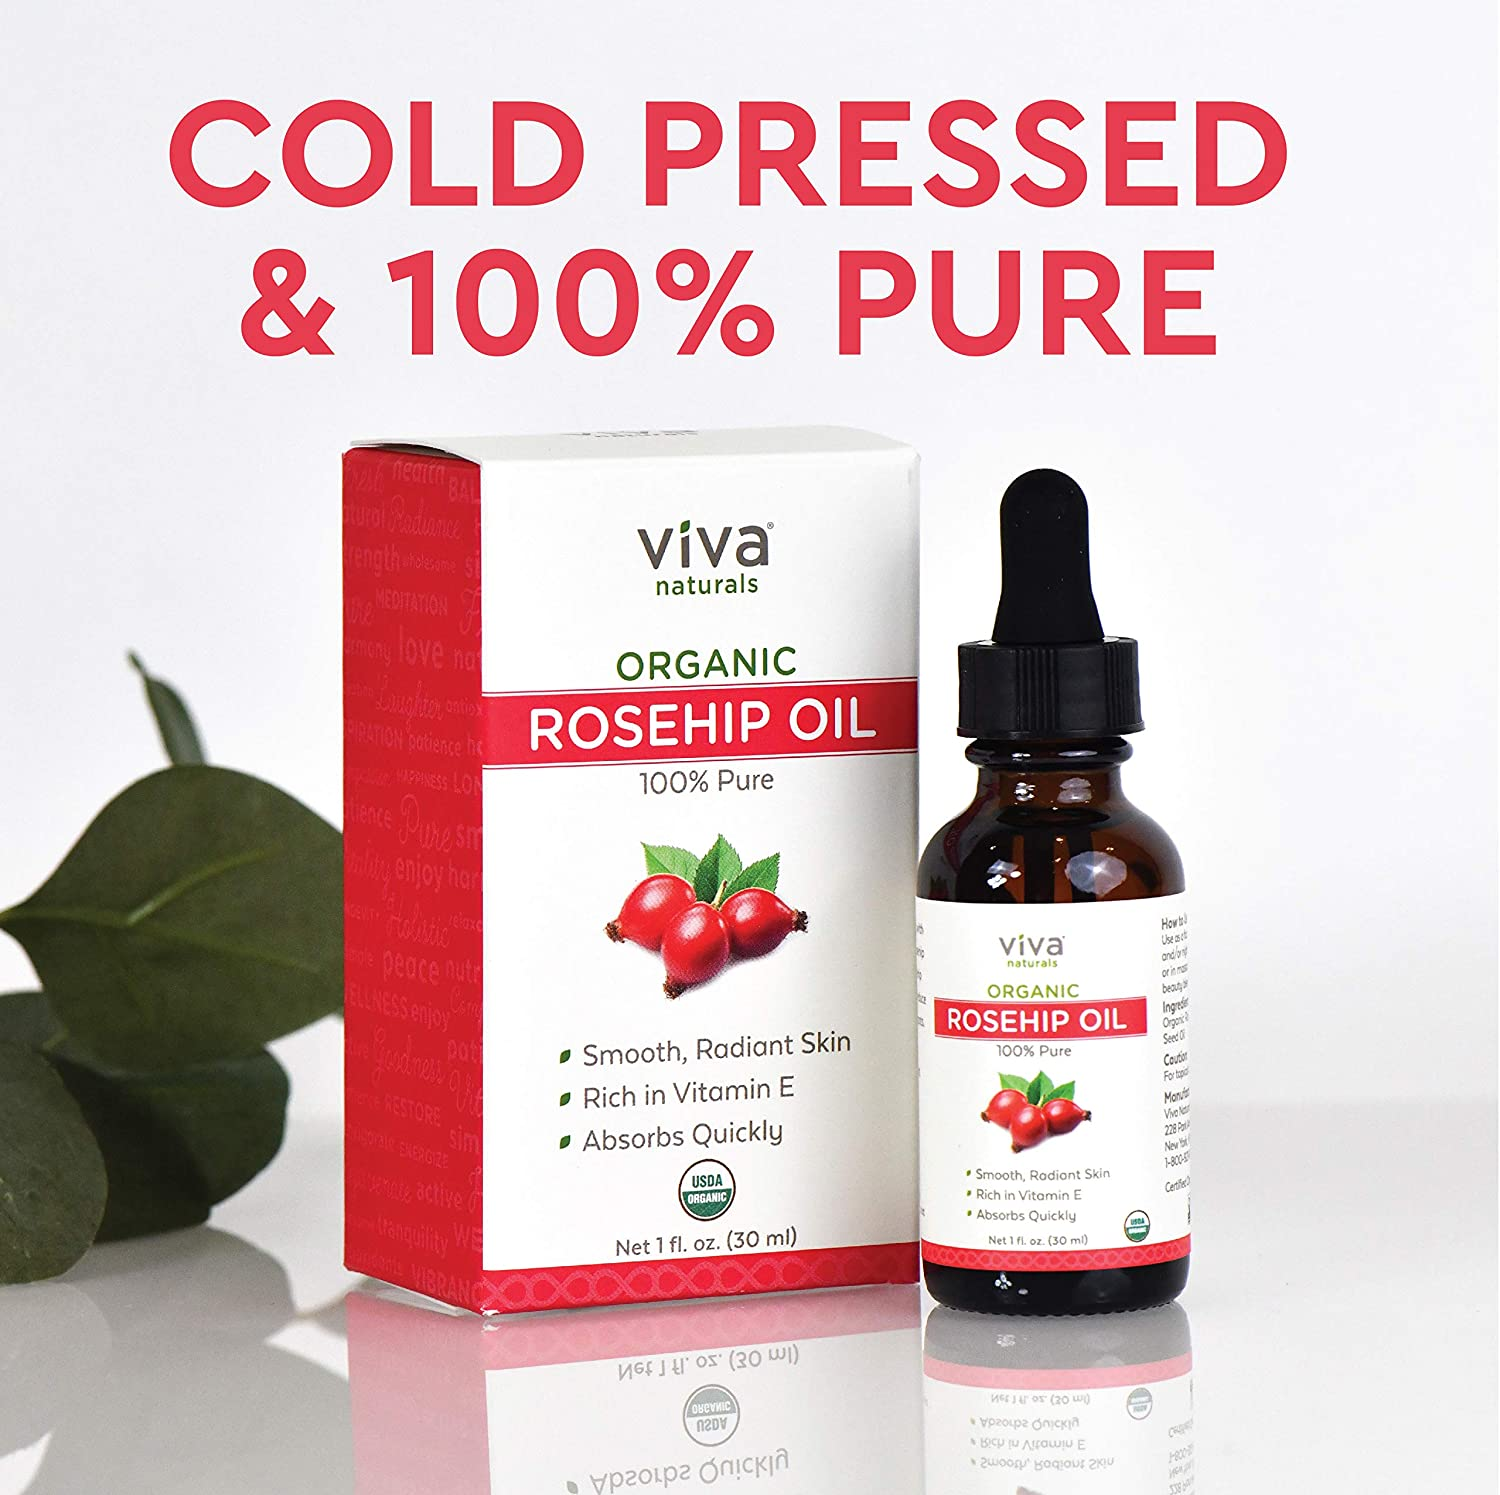 Organic Rosehip Seed Oil for Face - 100% Pure Cold Pressed Facial Oil, Reduces the Appearance of Scars, Natural Non-Greasy Moisturizing Serum for Dry and Sensitive Skin